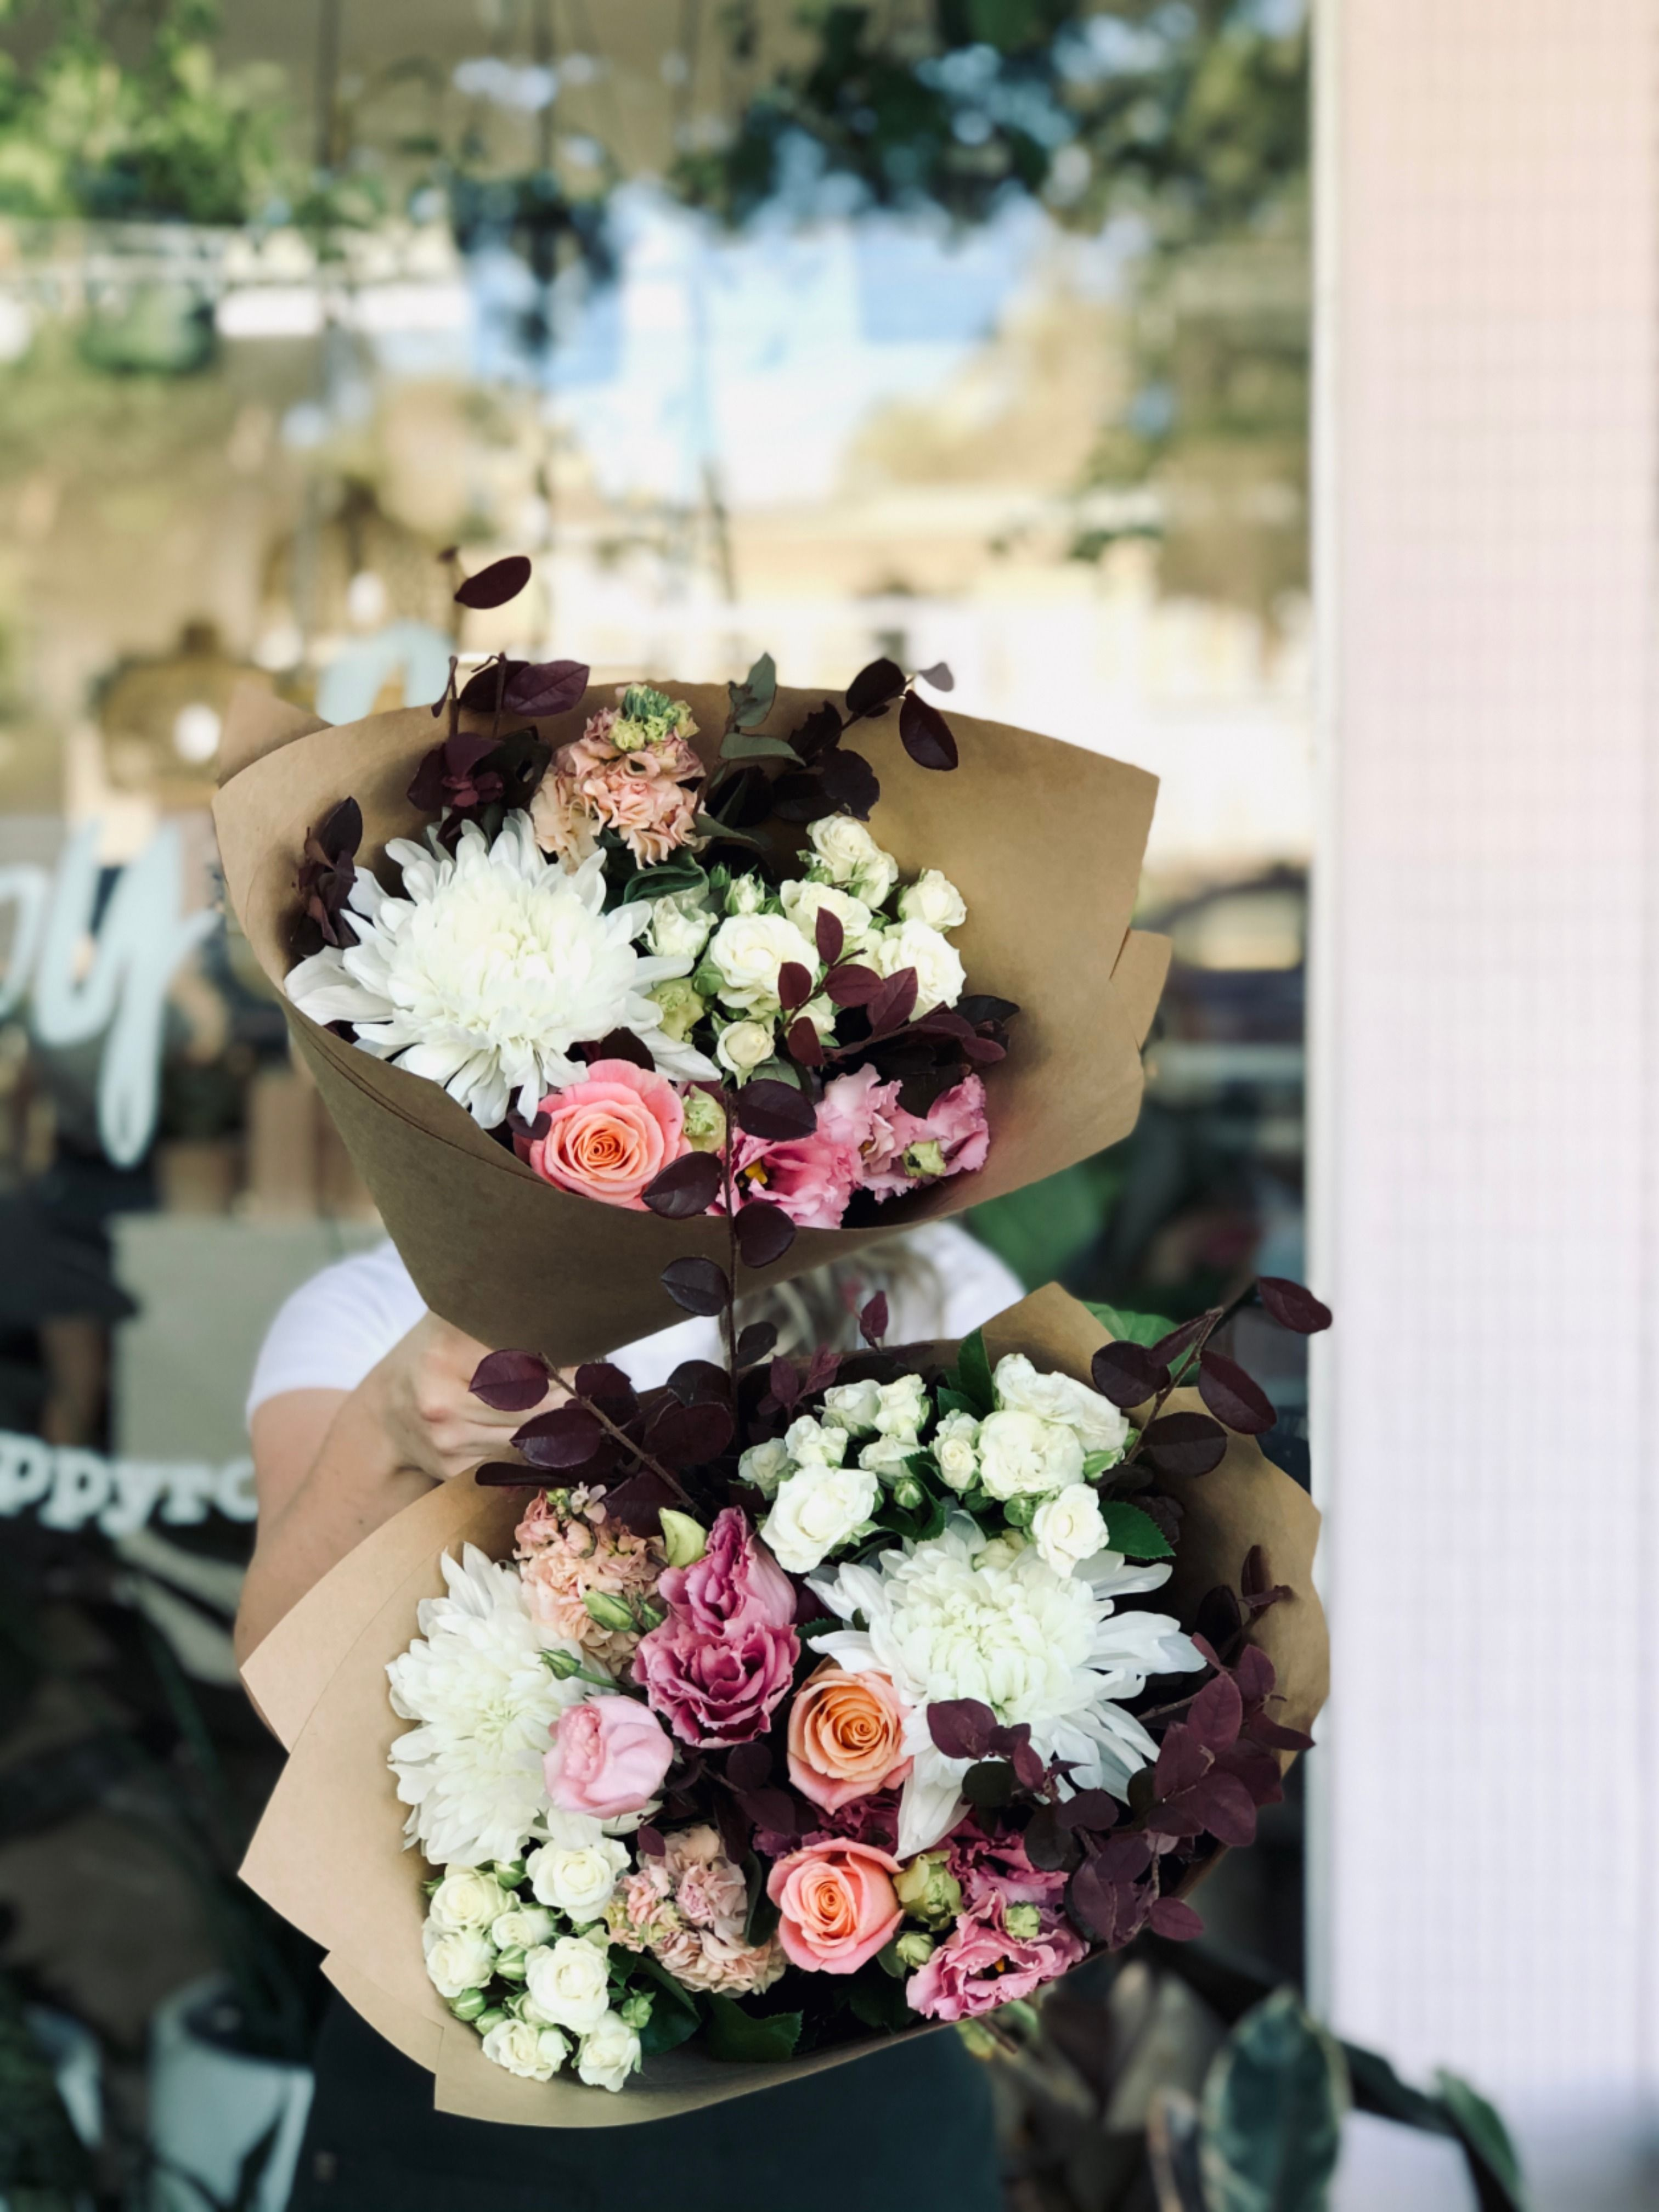 Monday 30th March In 2020 Flower Delivery Gorgeous Wedding Bouquet Sustainable Flowers